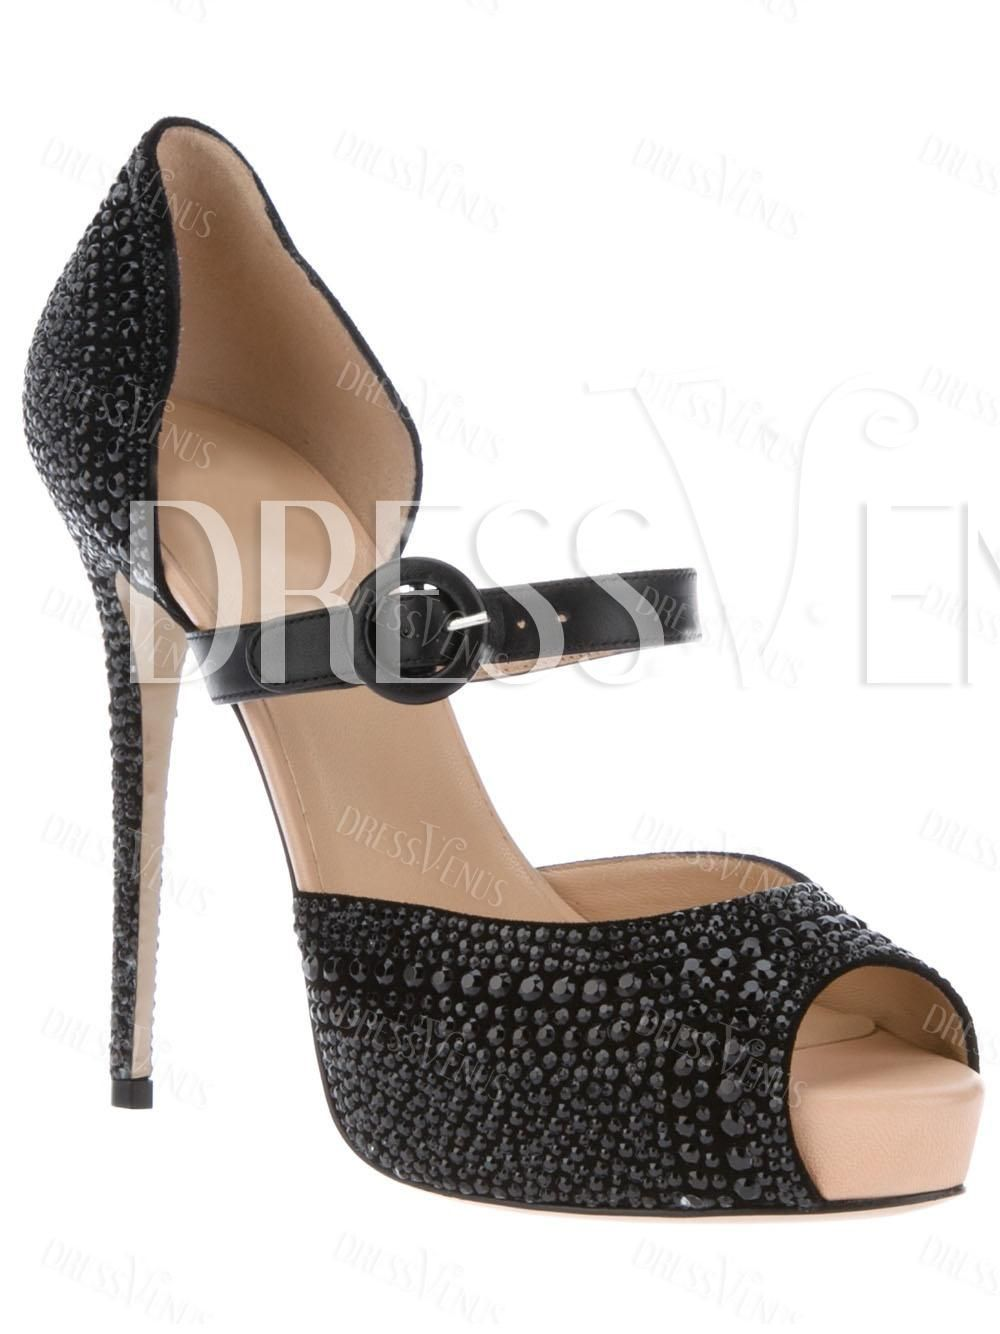 Shoes zone sandals - Now The Price Is 64 09 Listprice 179 00 Prom Shoes Plus Size Shoes